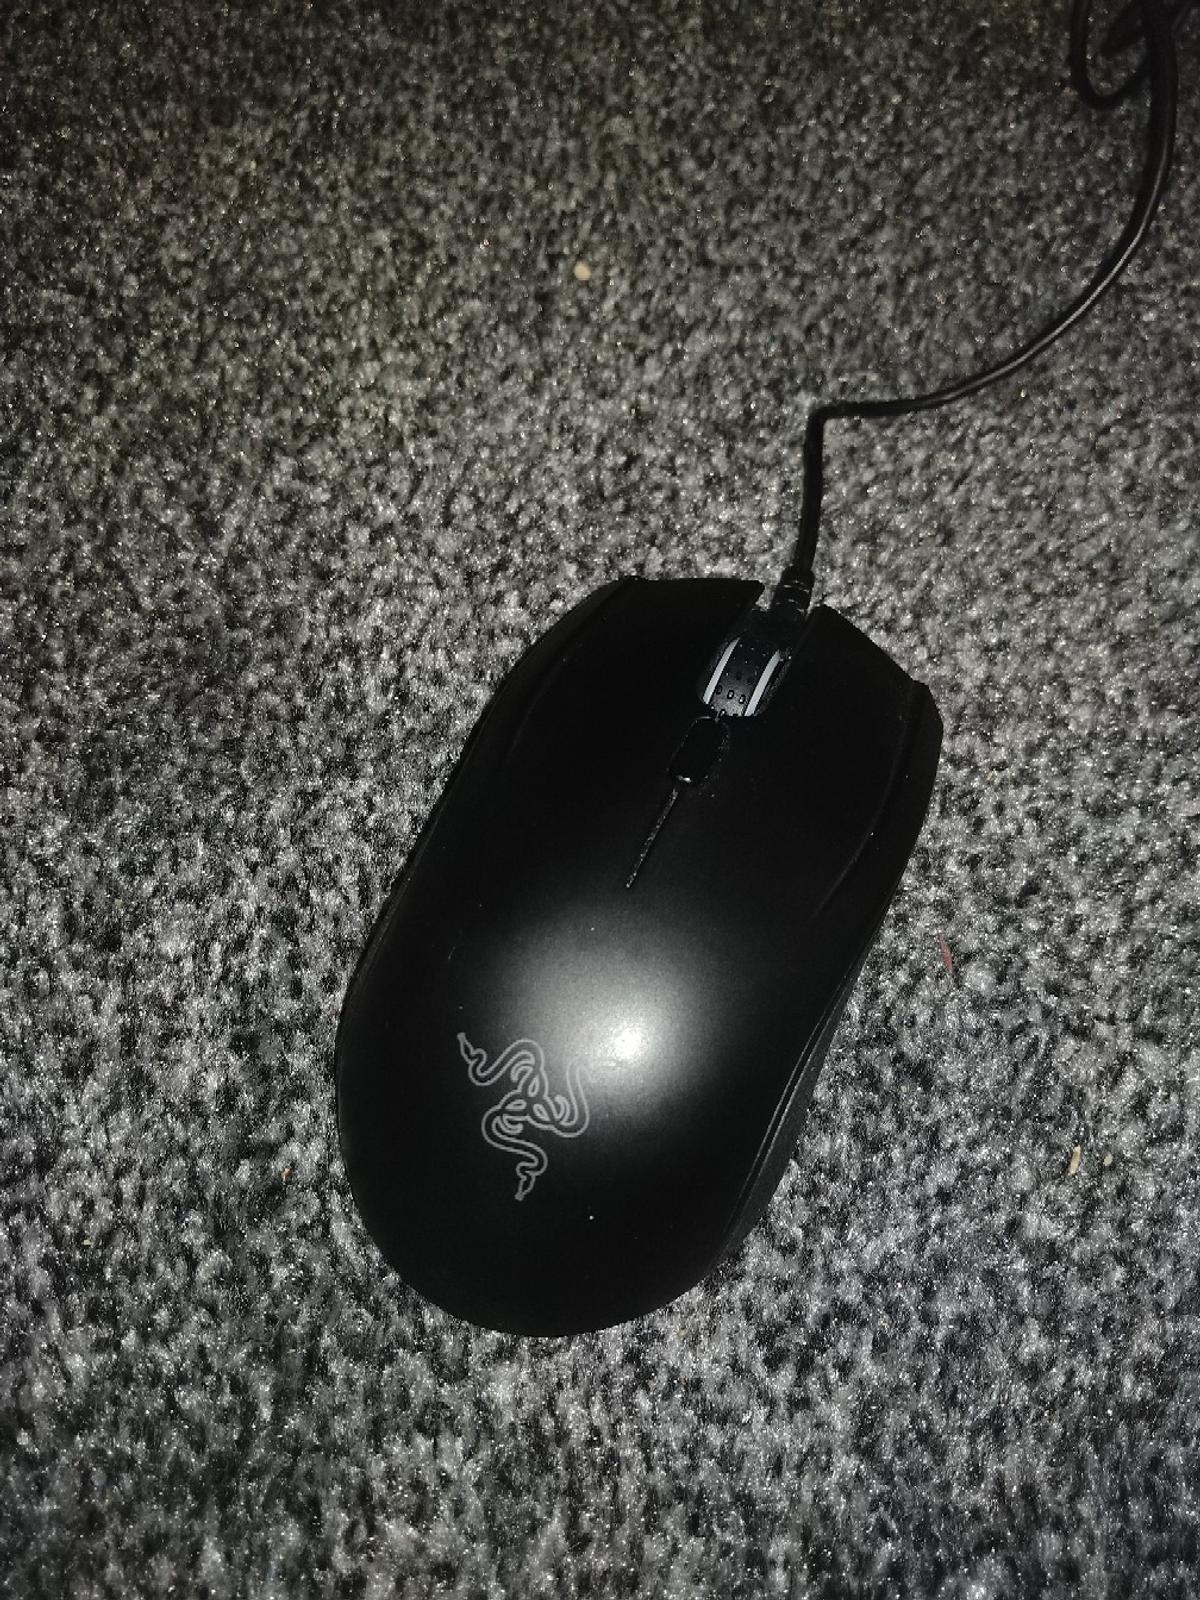 Used mouse Taken care of so looks like new comes with original box and instructions